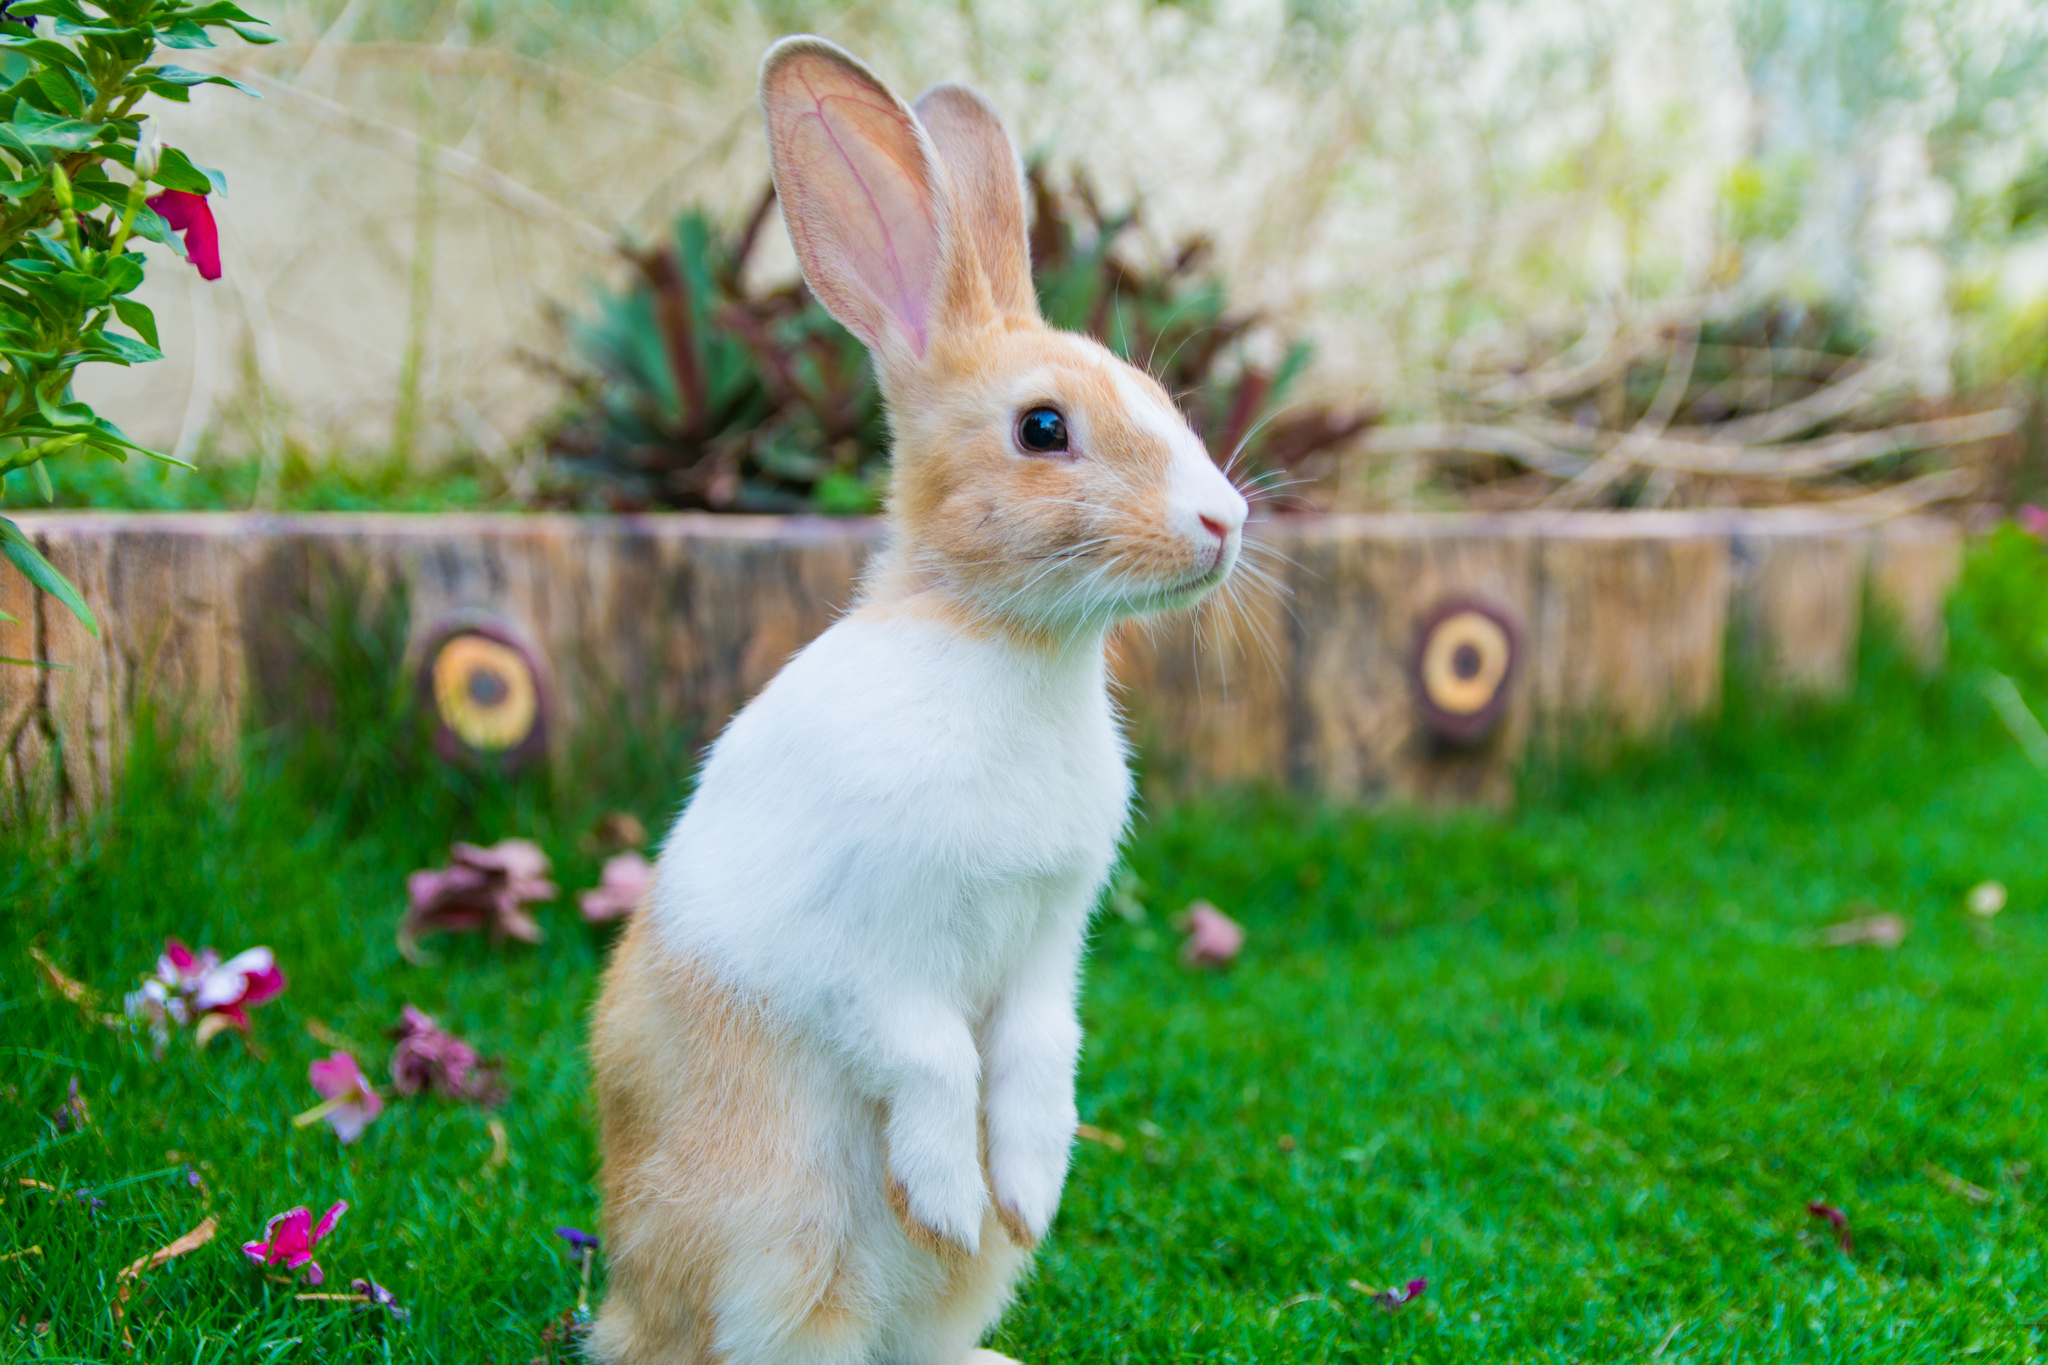 Bunny Stands Up to Gauge All That Binkying Space in the Yard